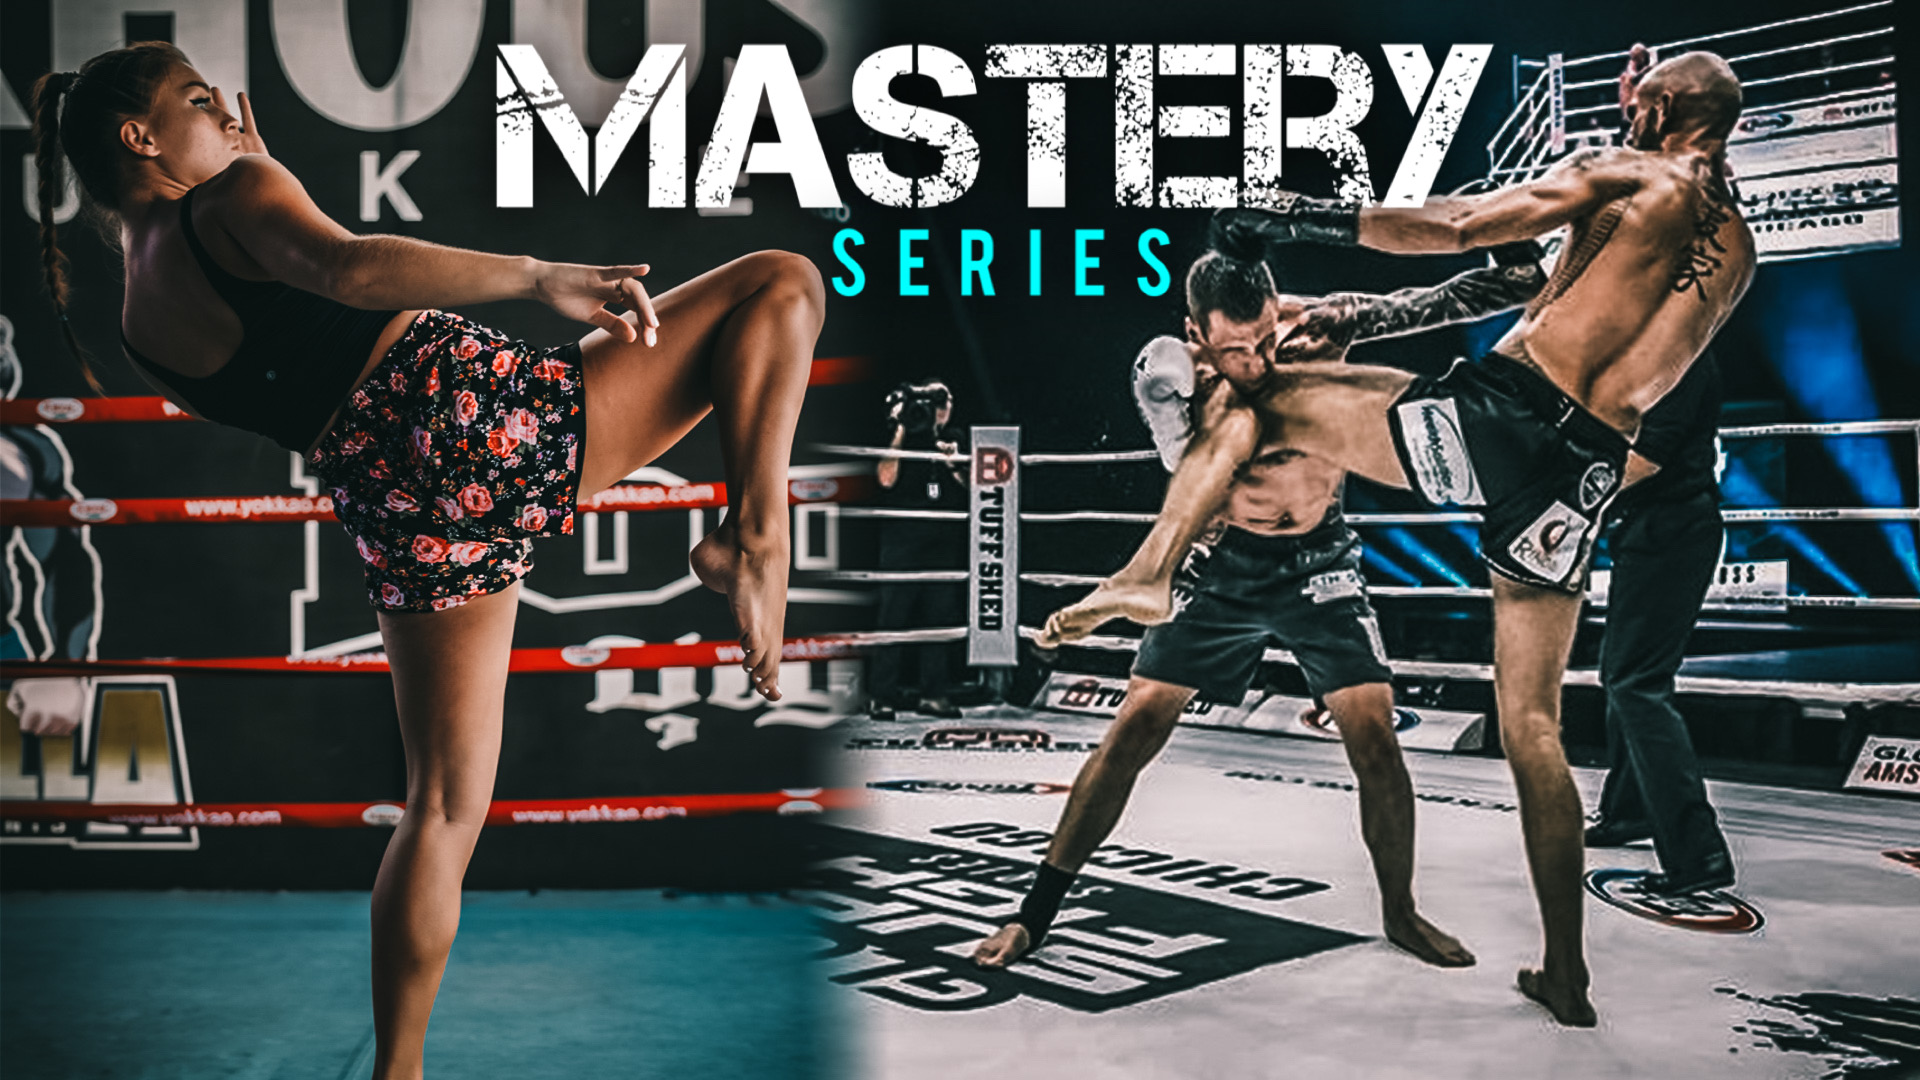 Mastery Series Preview